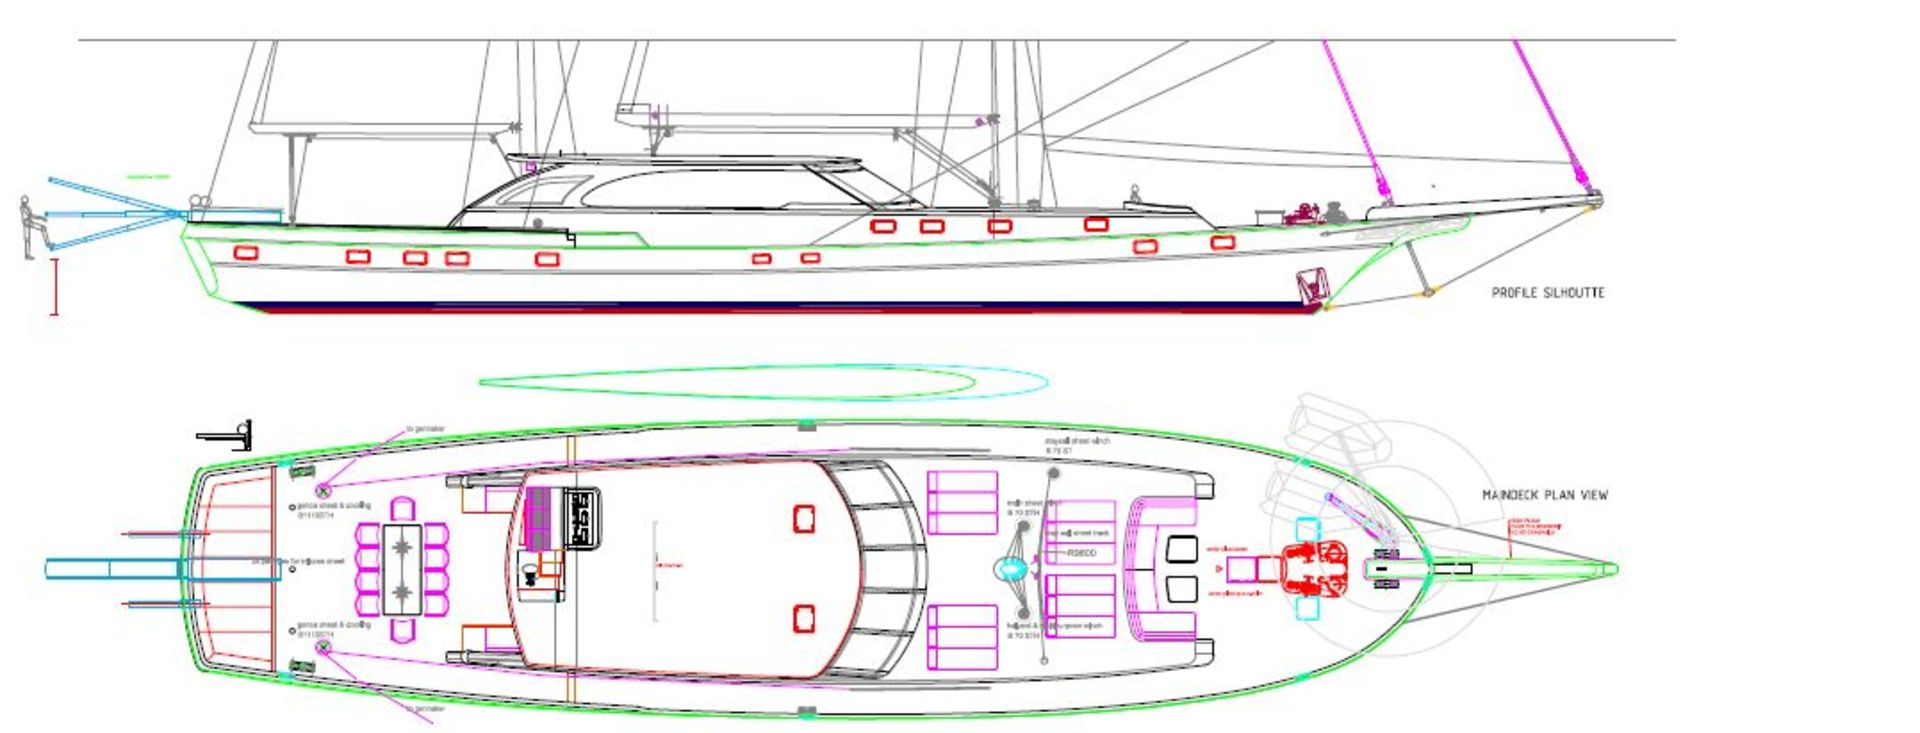 sailing nour layout